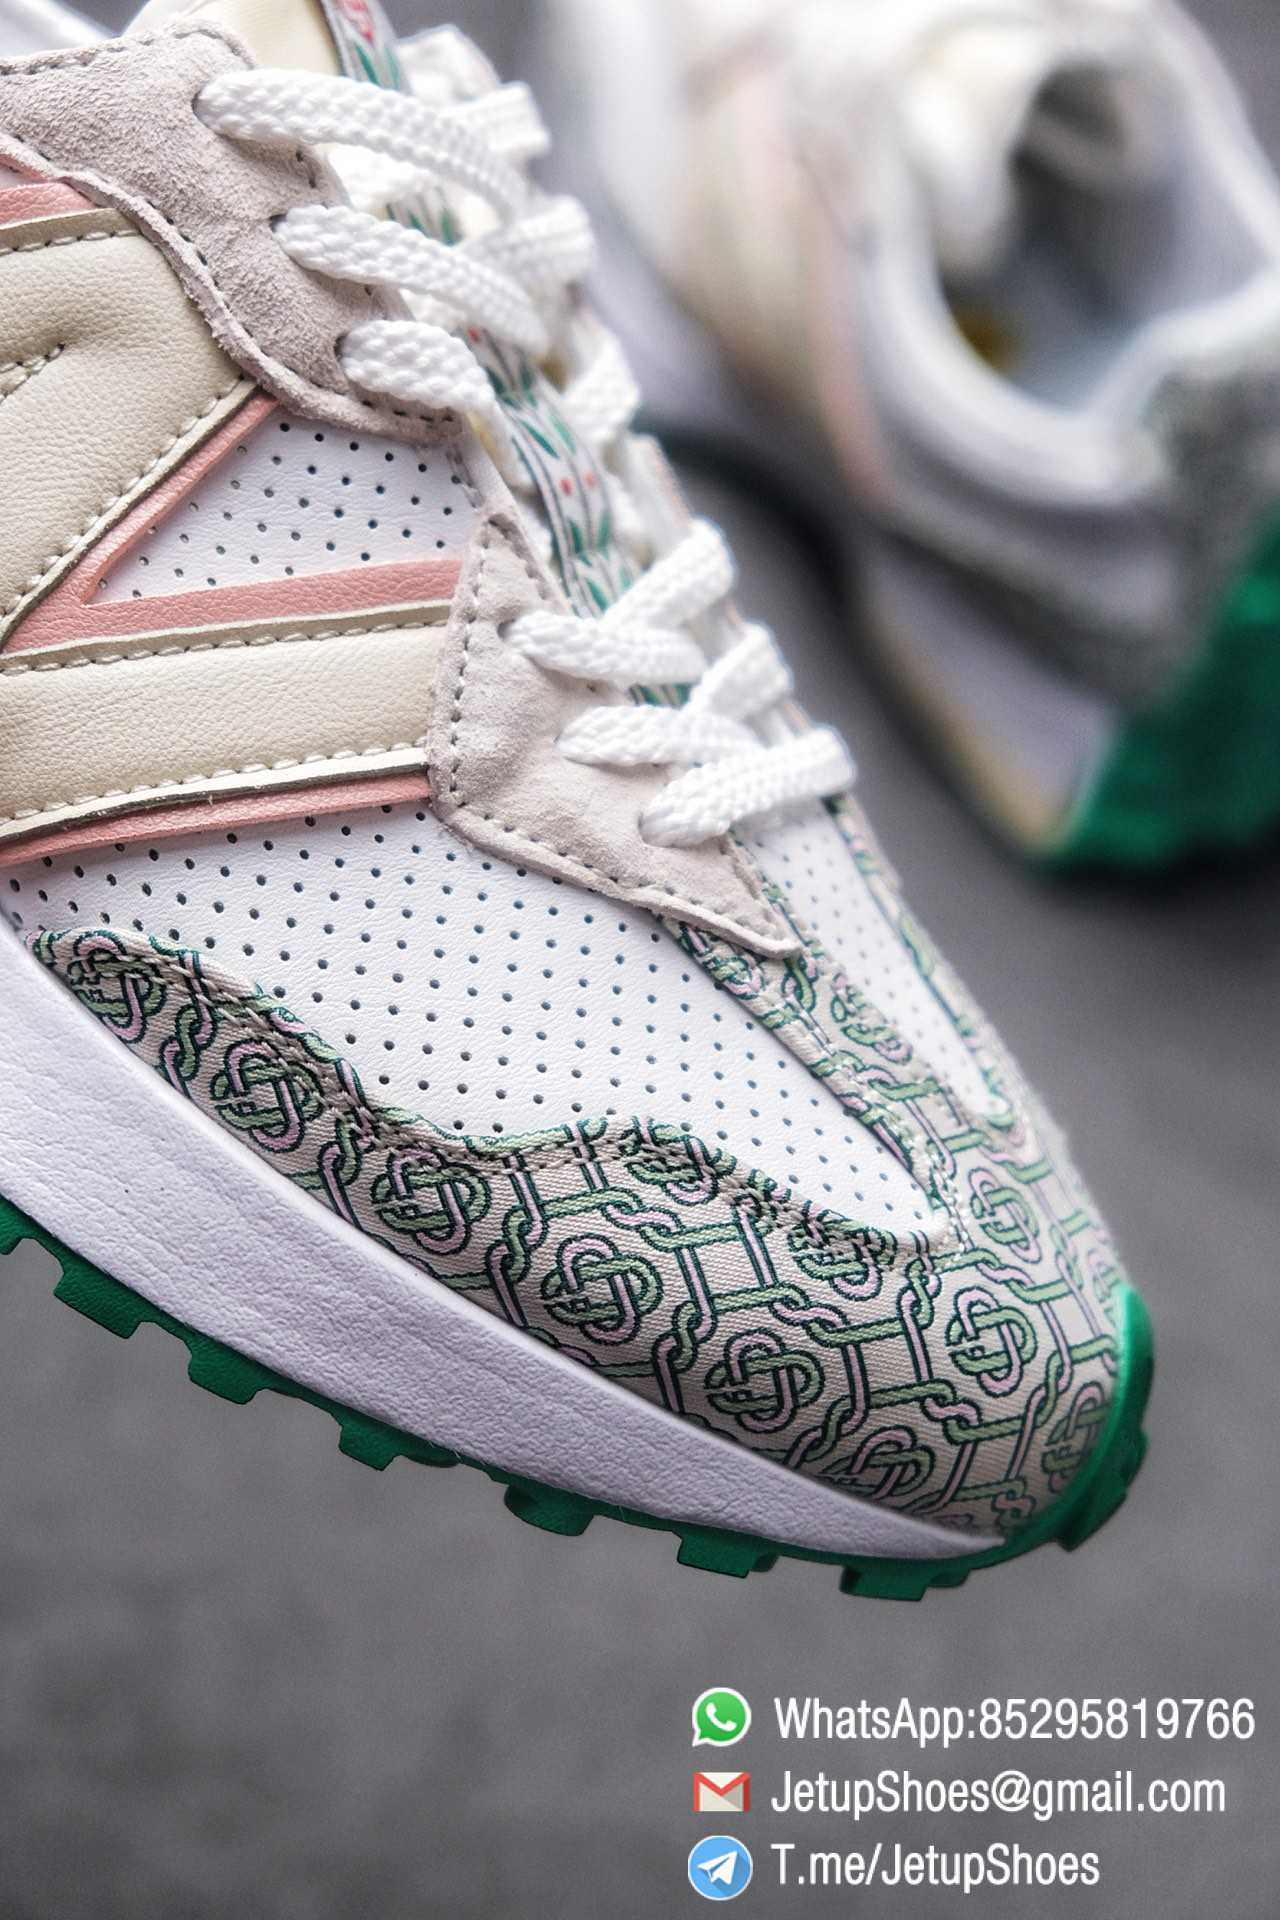 Replica Sneakers New Balance 327 Casablanca x 327 Munsell White Green Retro Running Shoes SKU MS327CAB Best RepSneakers 05